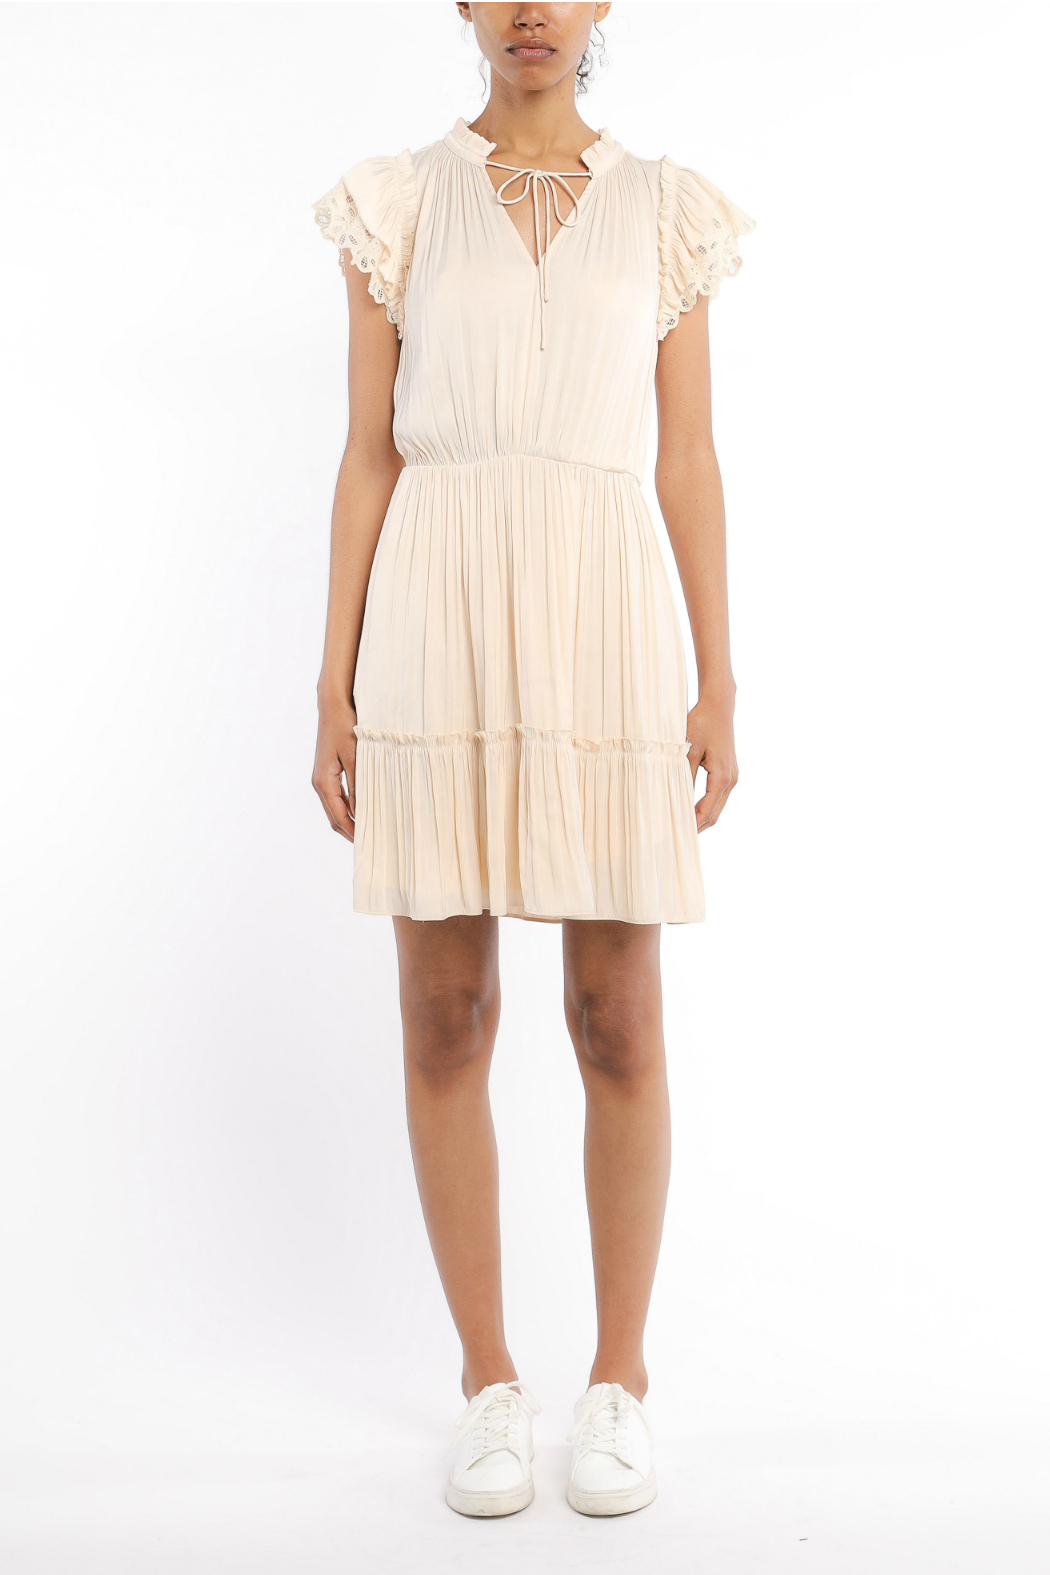 Current Air Lace trimmed short sleeve dress - Main Image